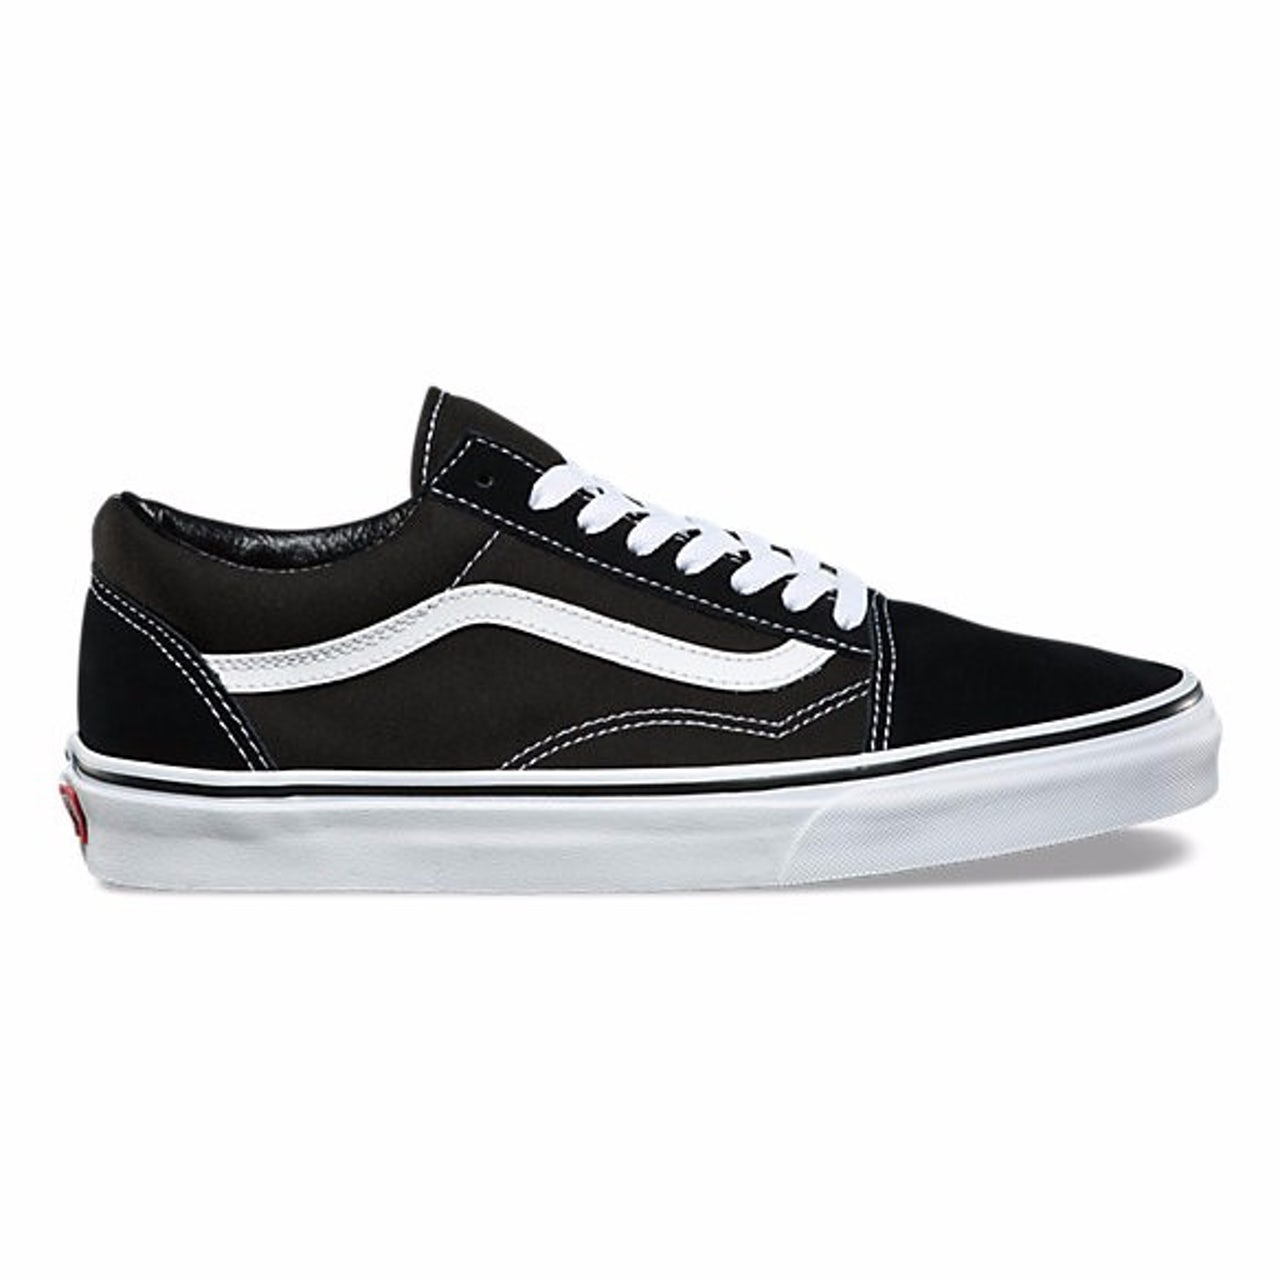 Don't buy these $200 Vans ripoffs | The Outline